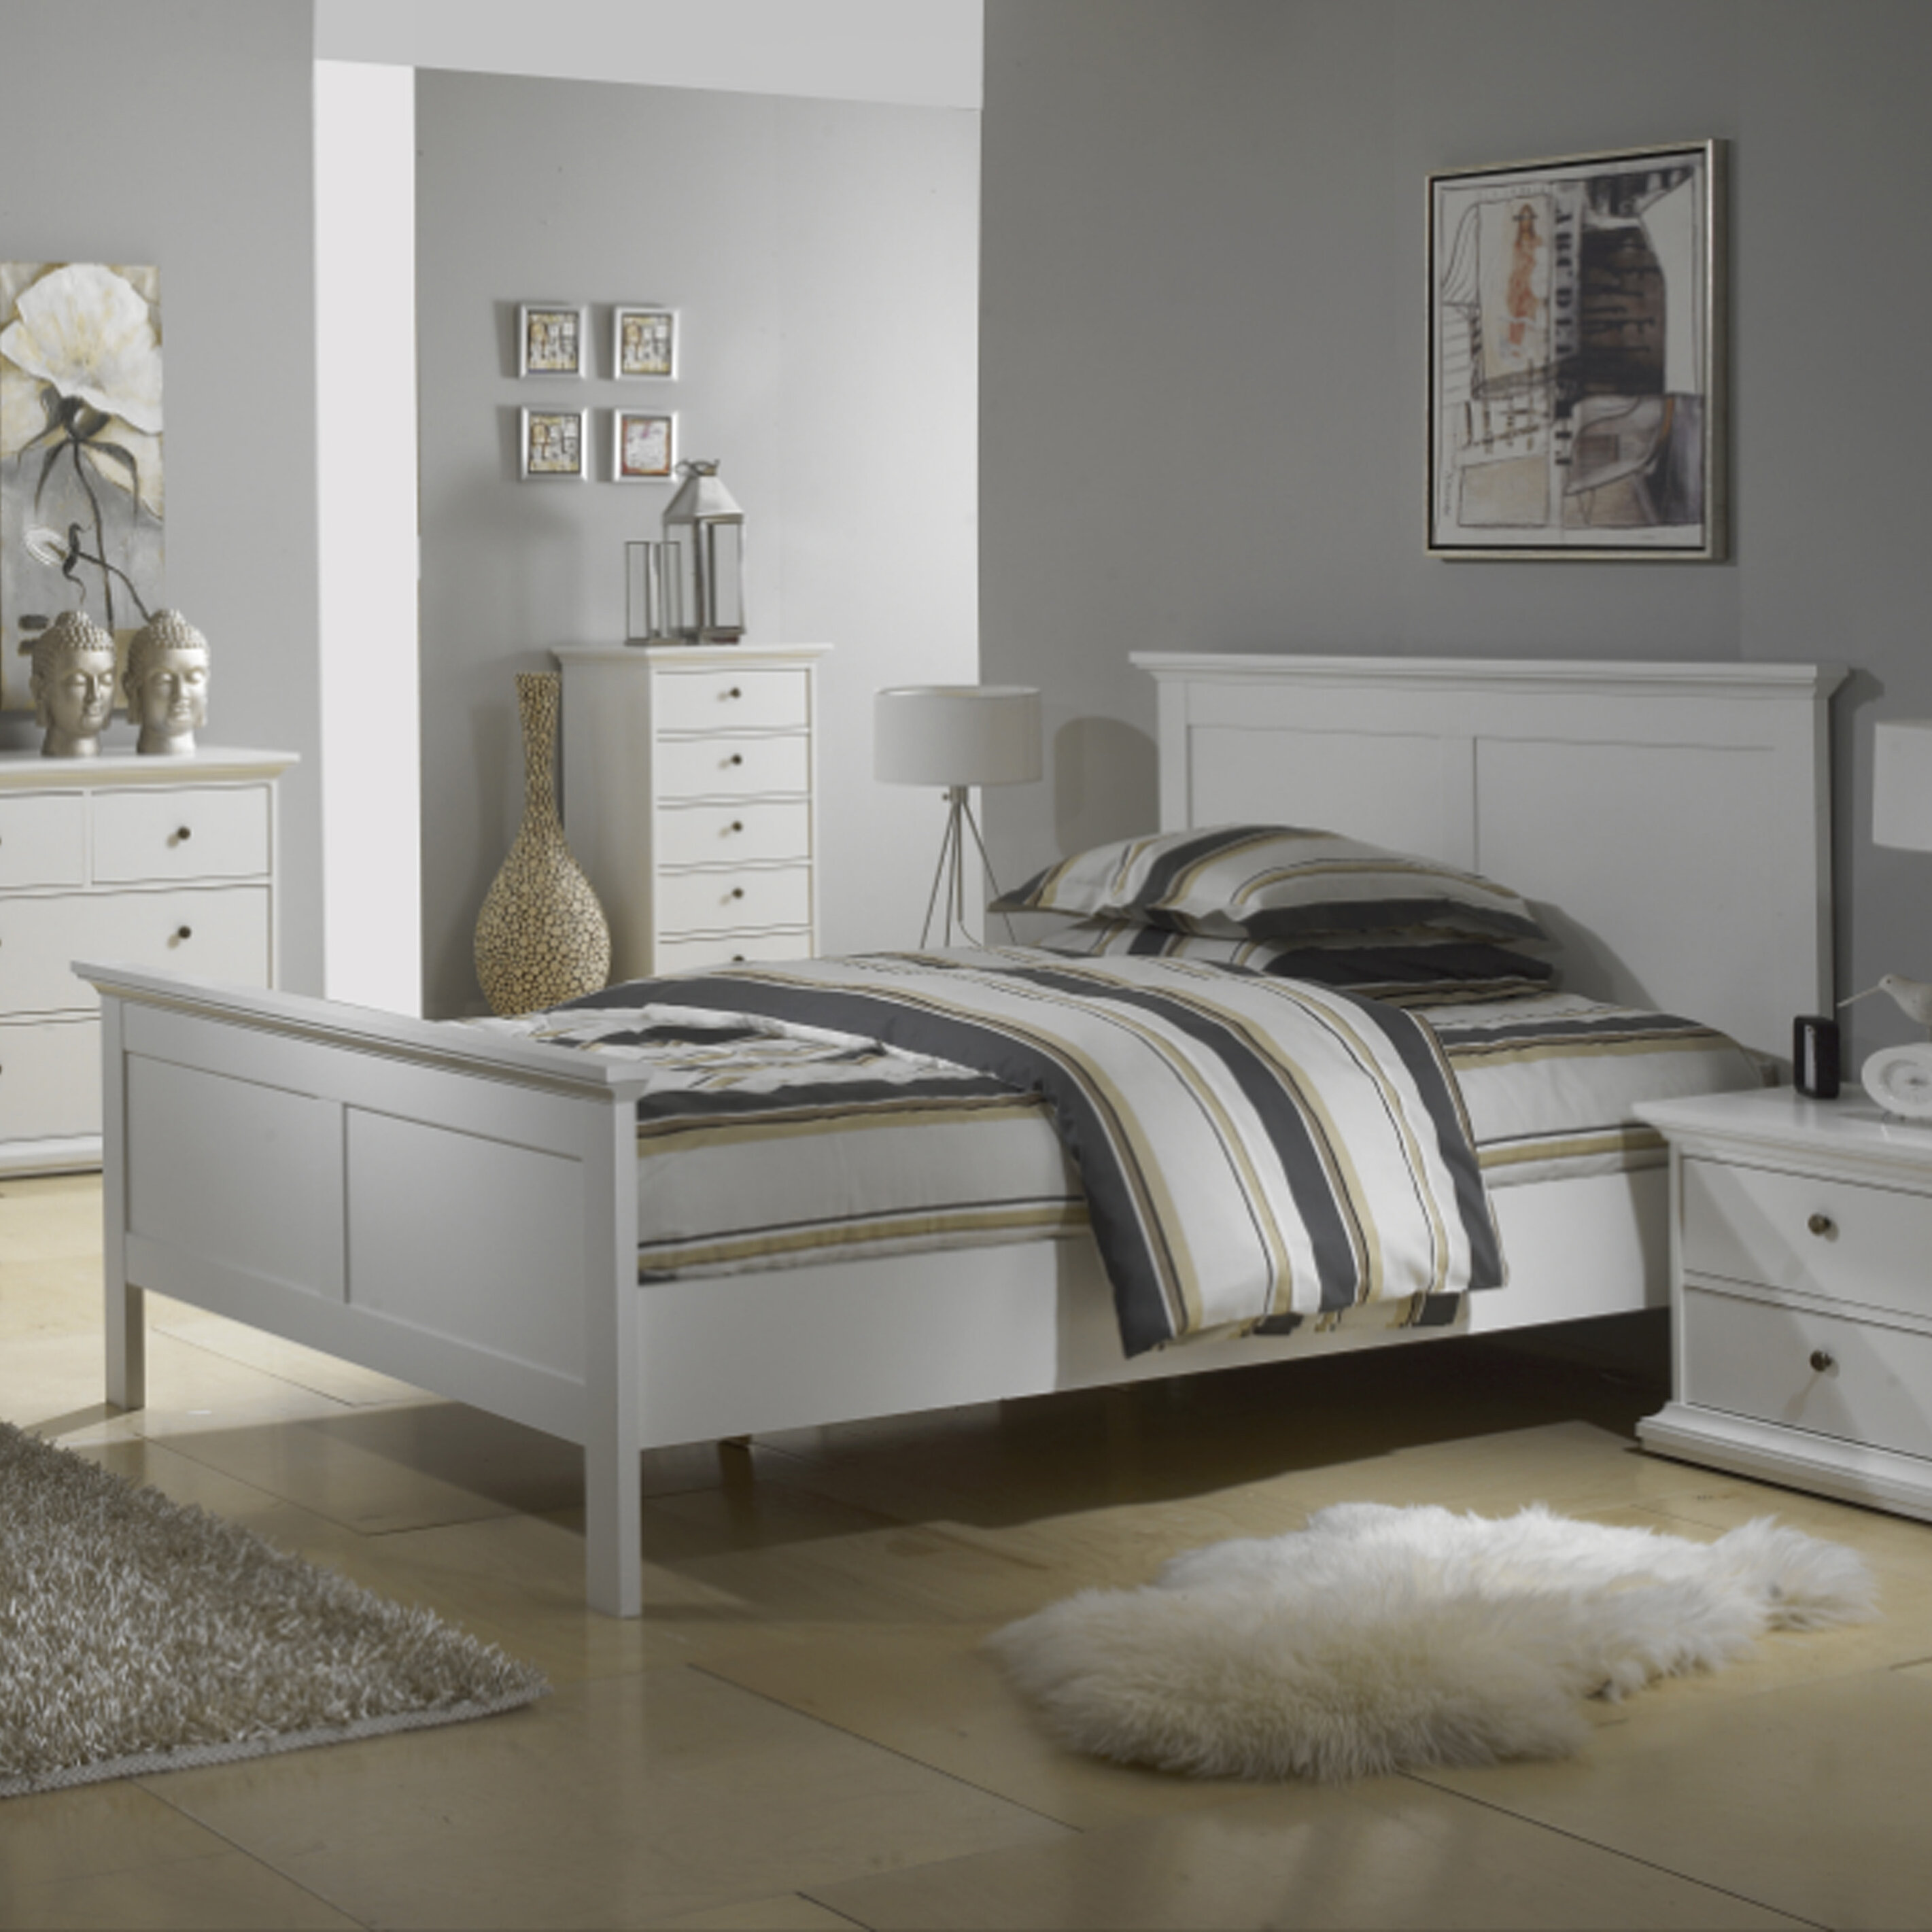 Beachcrest Home Breckenridge Queen Platform Bed | Wayfair